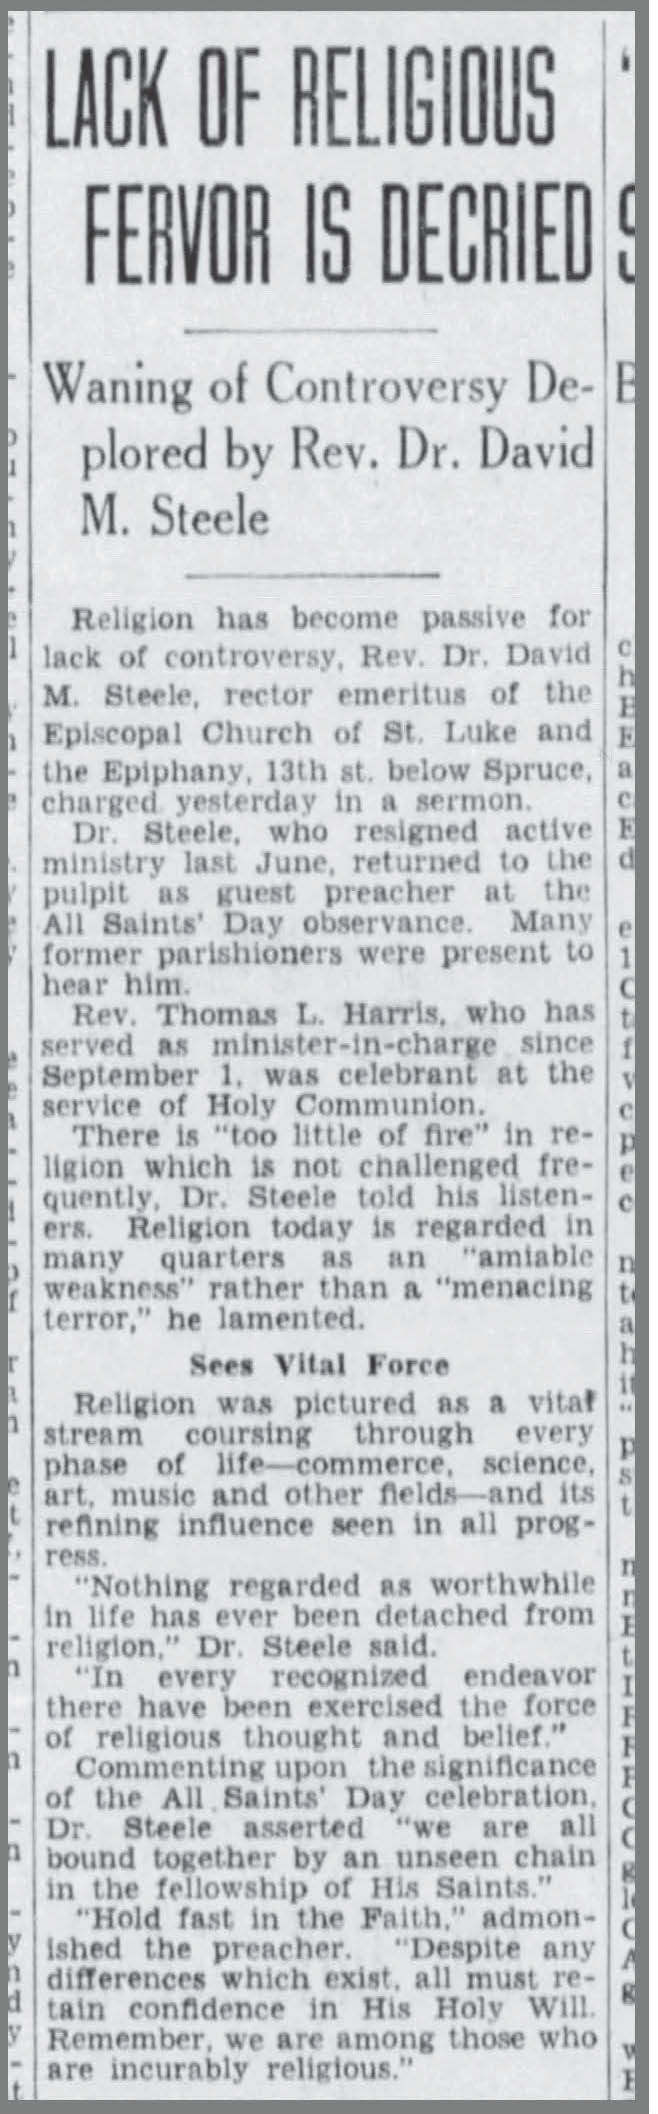 church of st luke the epiphany philadelphia studies 6nov1933